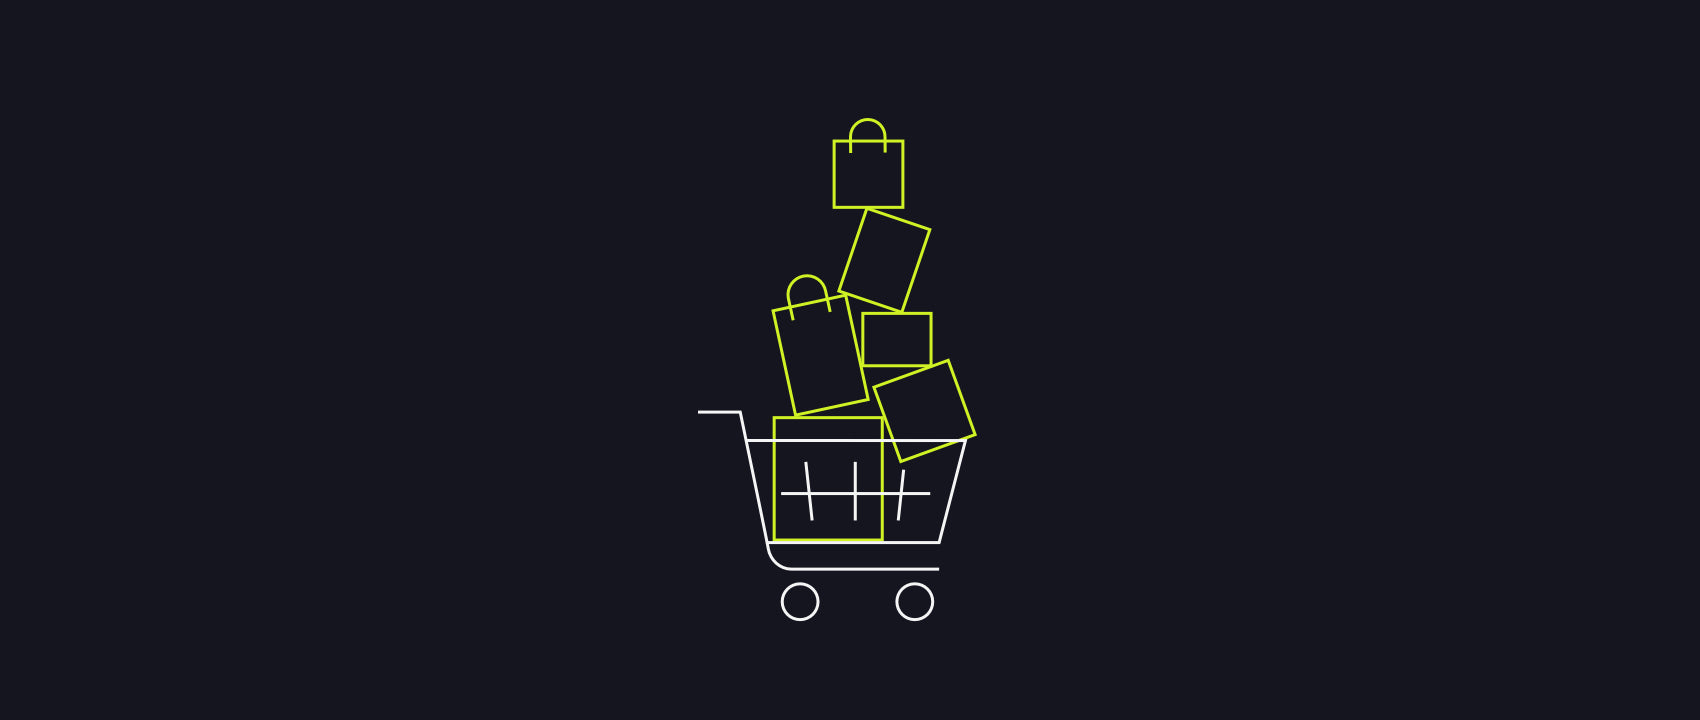 Black Friday Ecommerce: 15 Ideas, Tips & Strategies to 3X-10X Holiday Sales in 2019